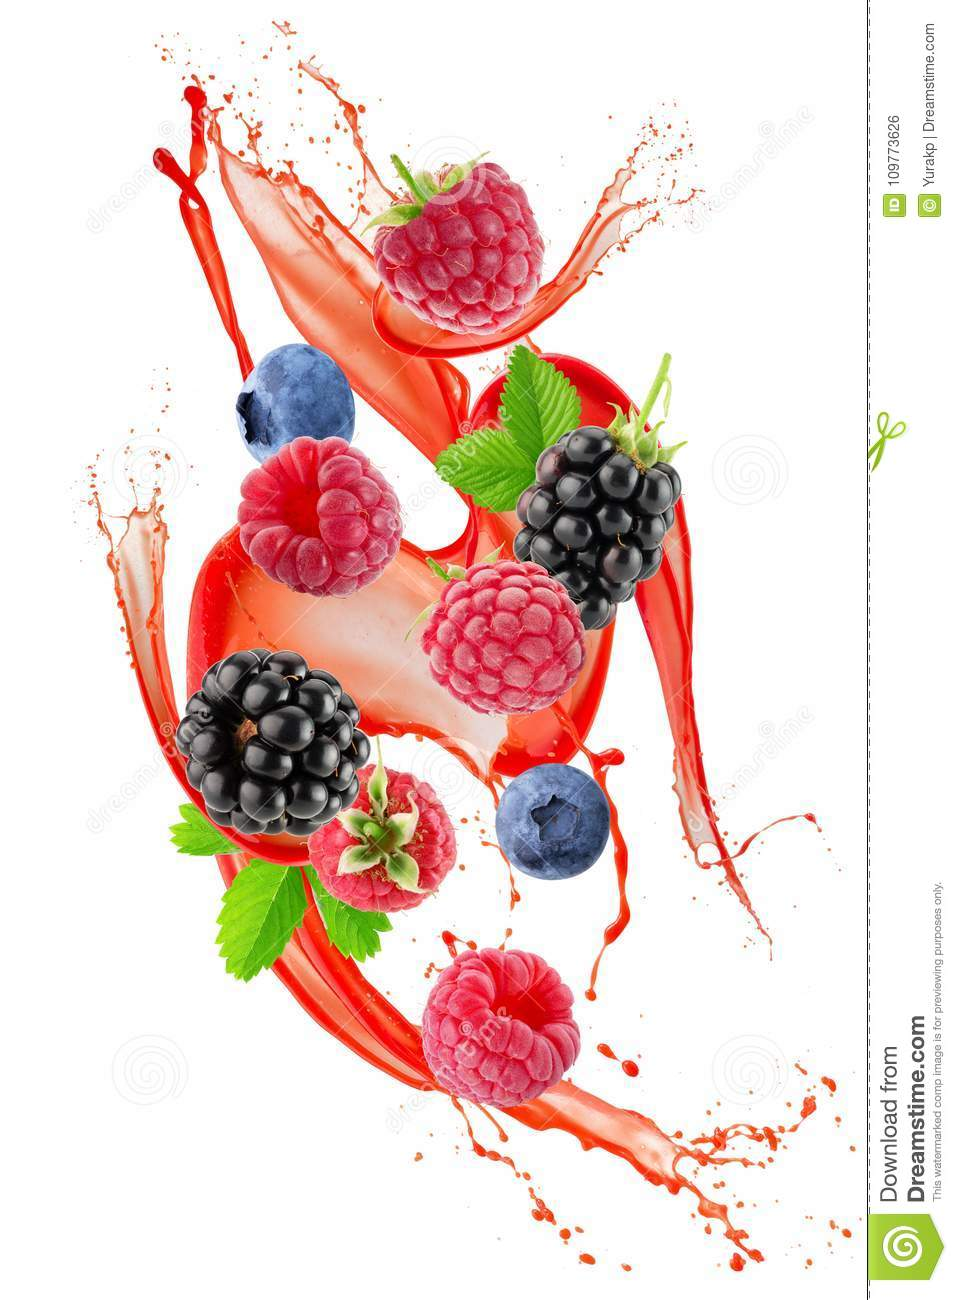 Berry Mix In Juice Splash Isolated On A White Background ...